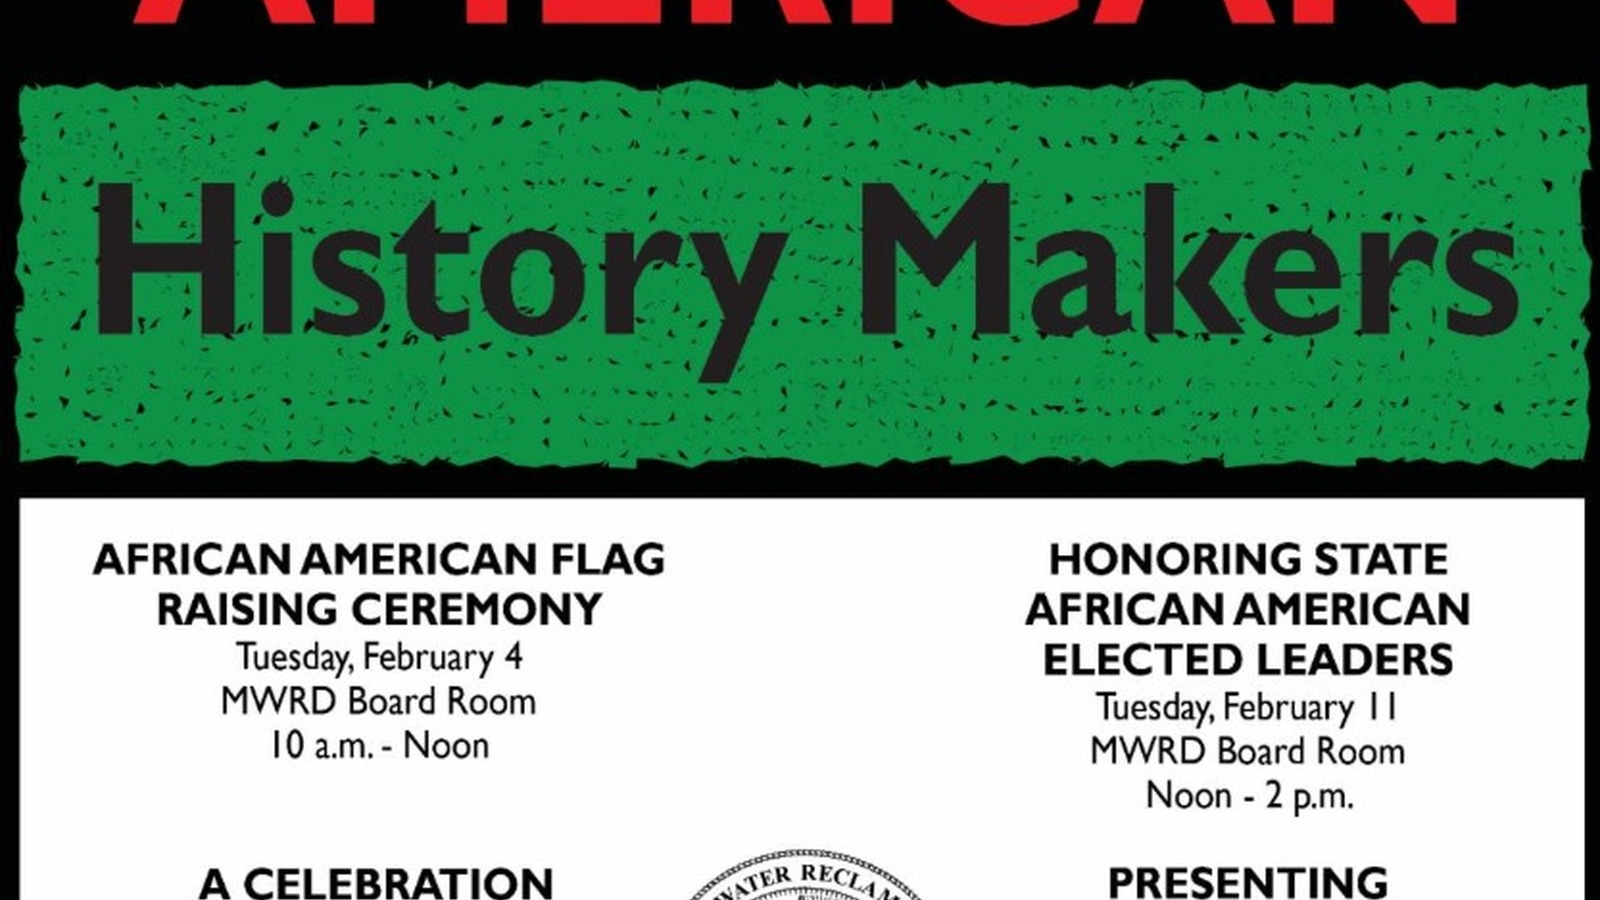 Image in support of: Celebrating African American History Makers at the MWRD to celebrate African American History Makers in February